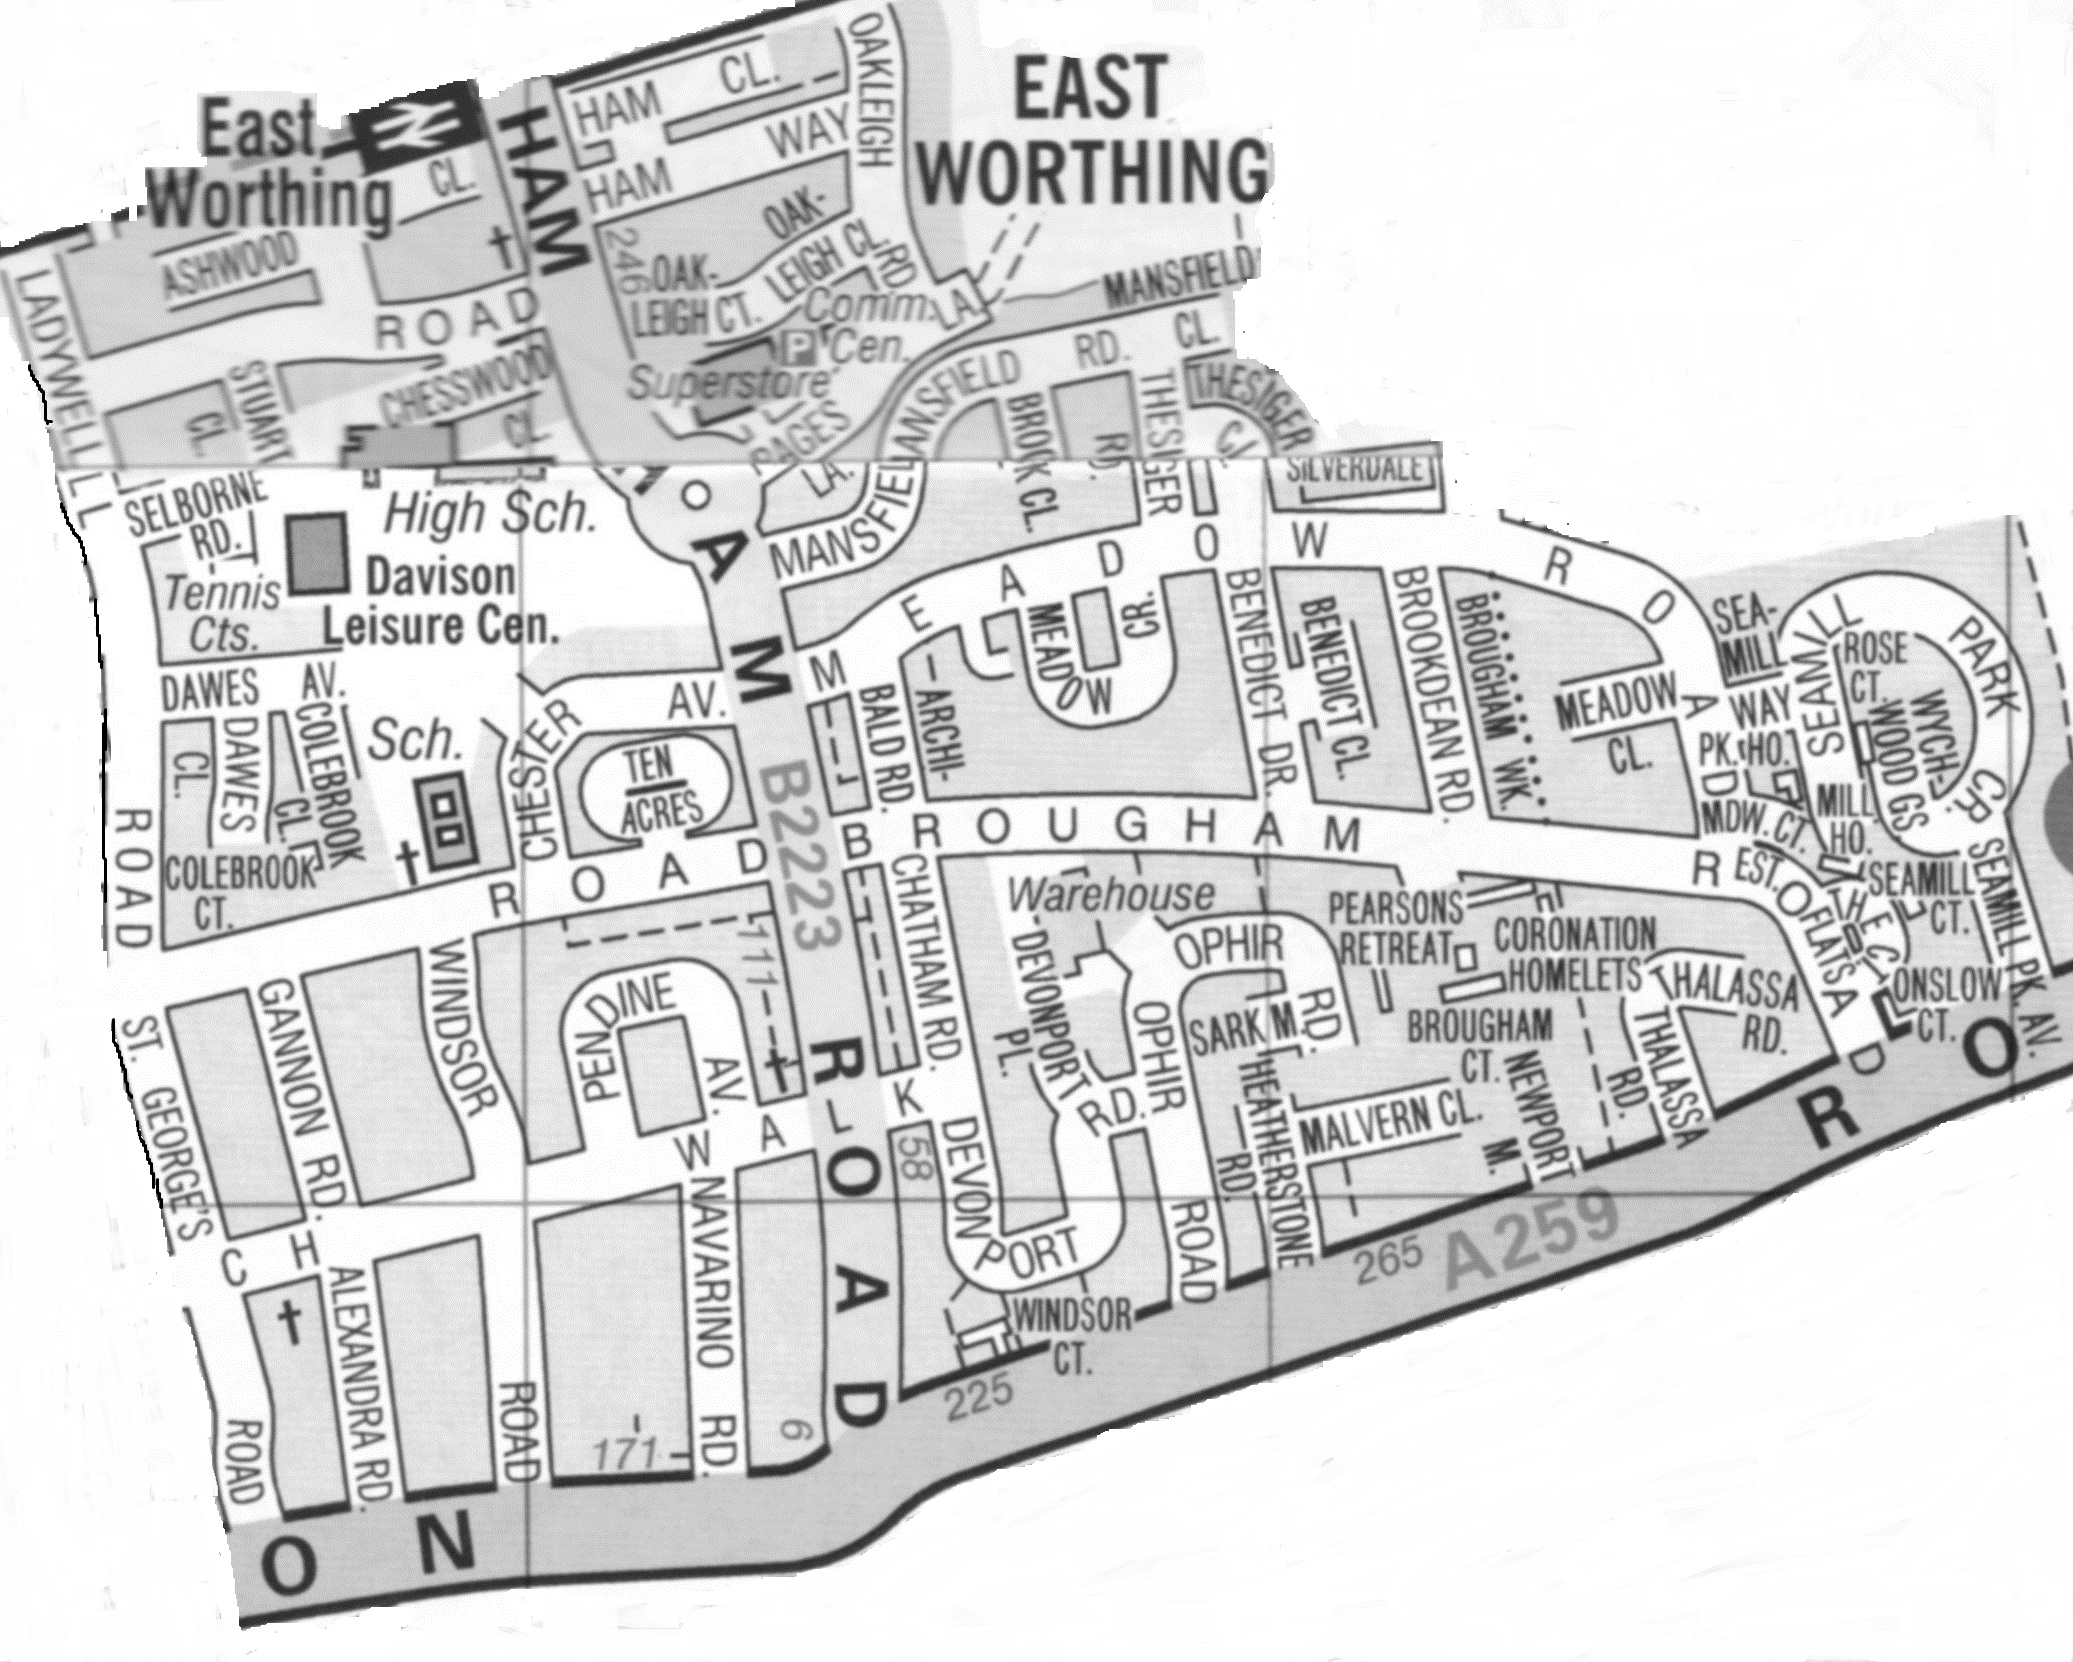 Worthing Direct Leaflet Distribution Services East Worthing area delivery map